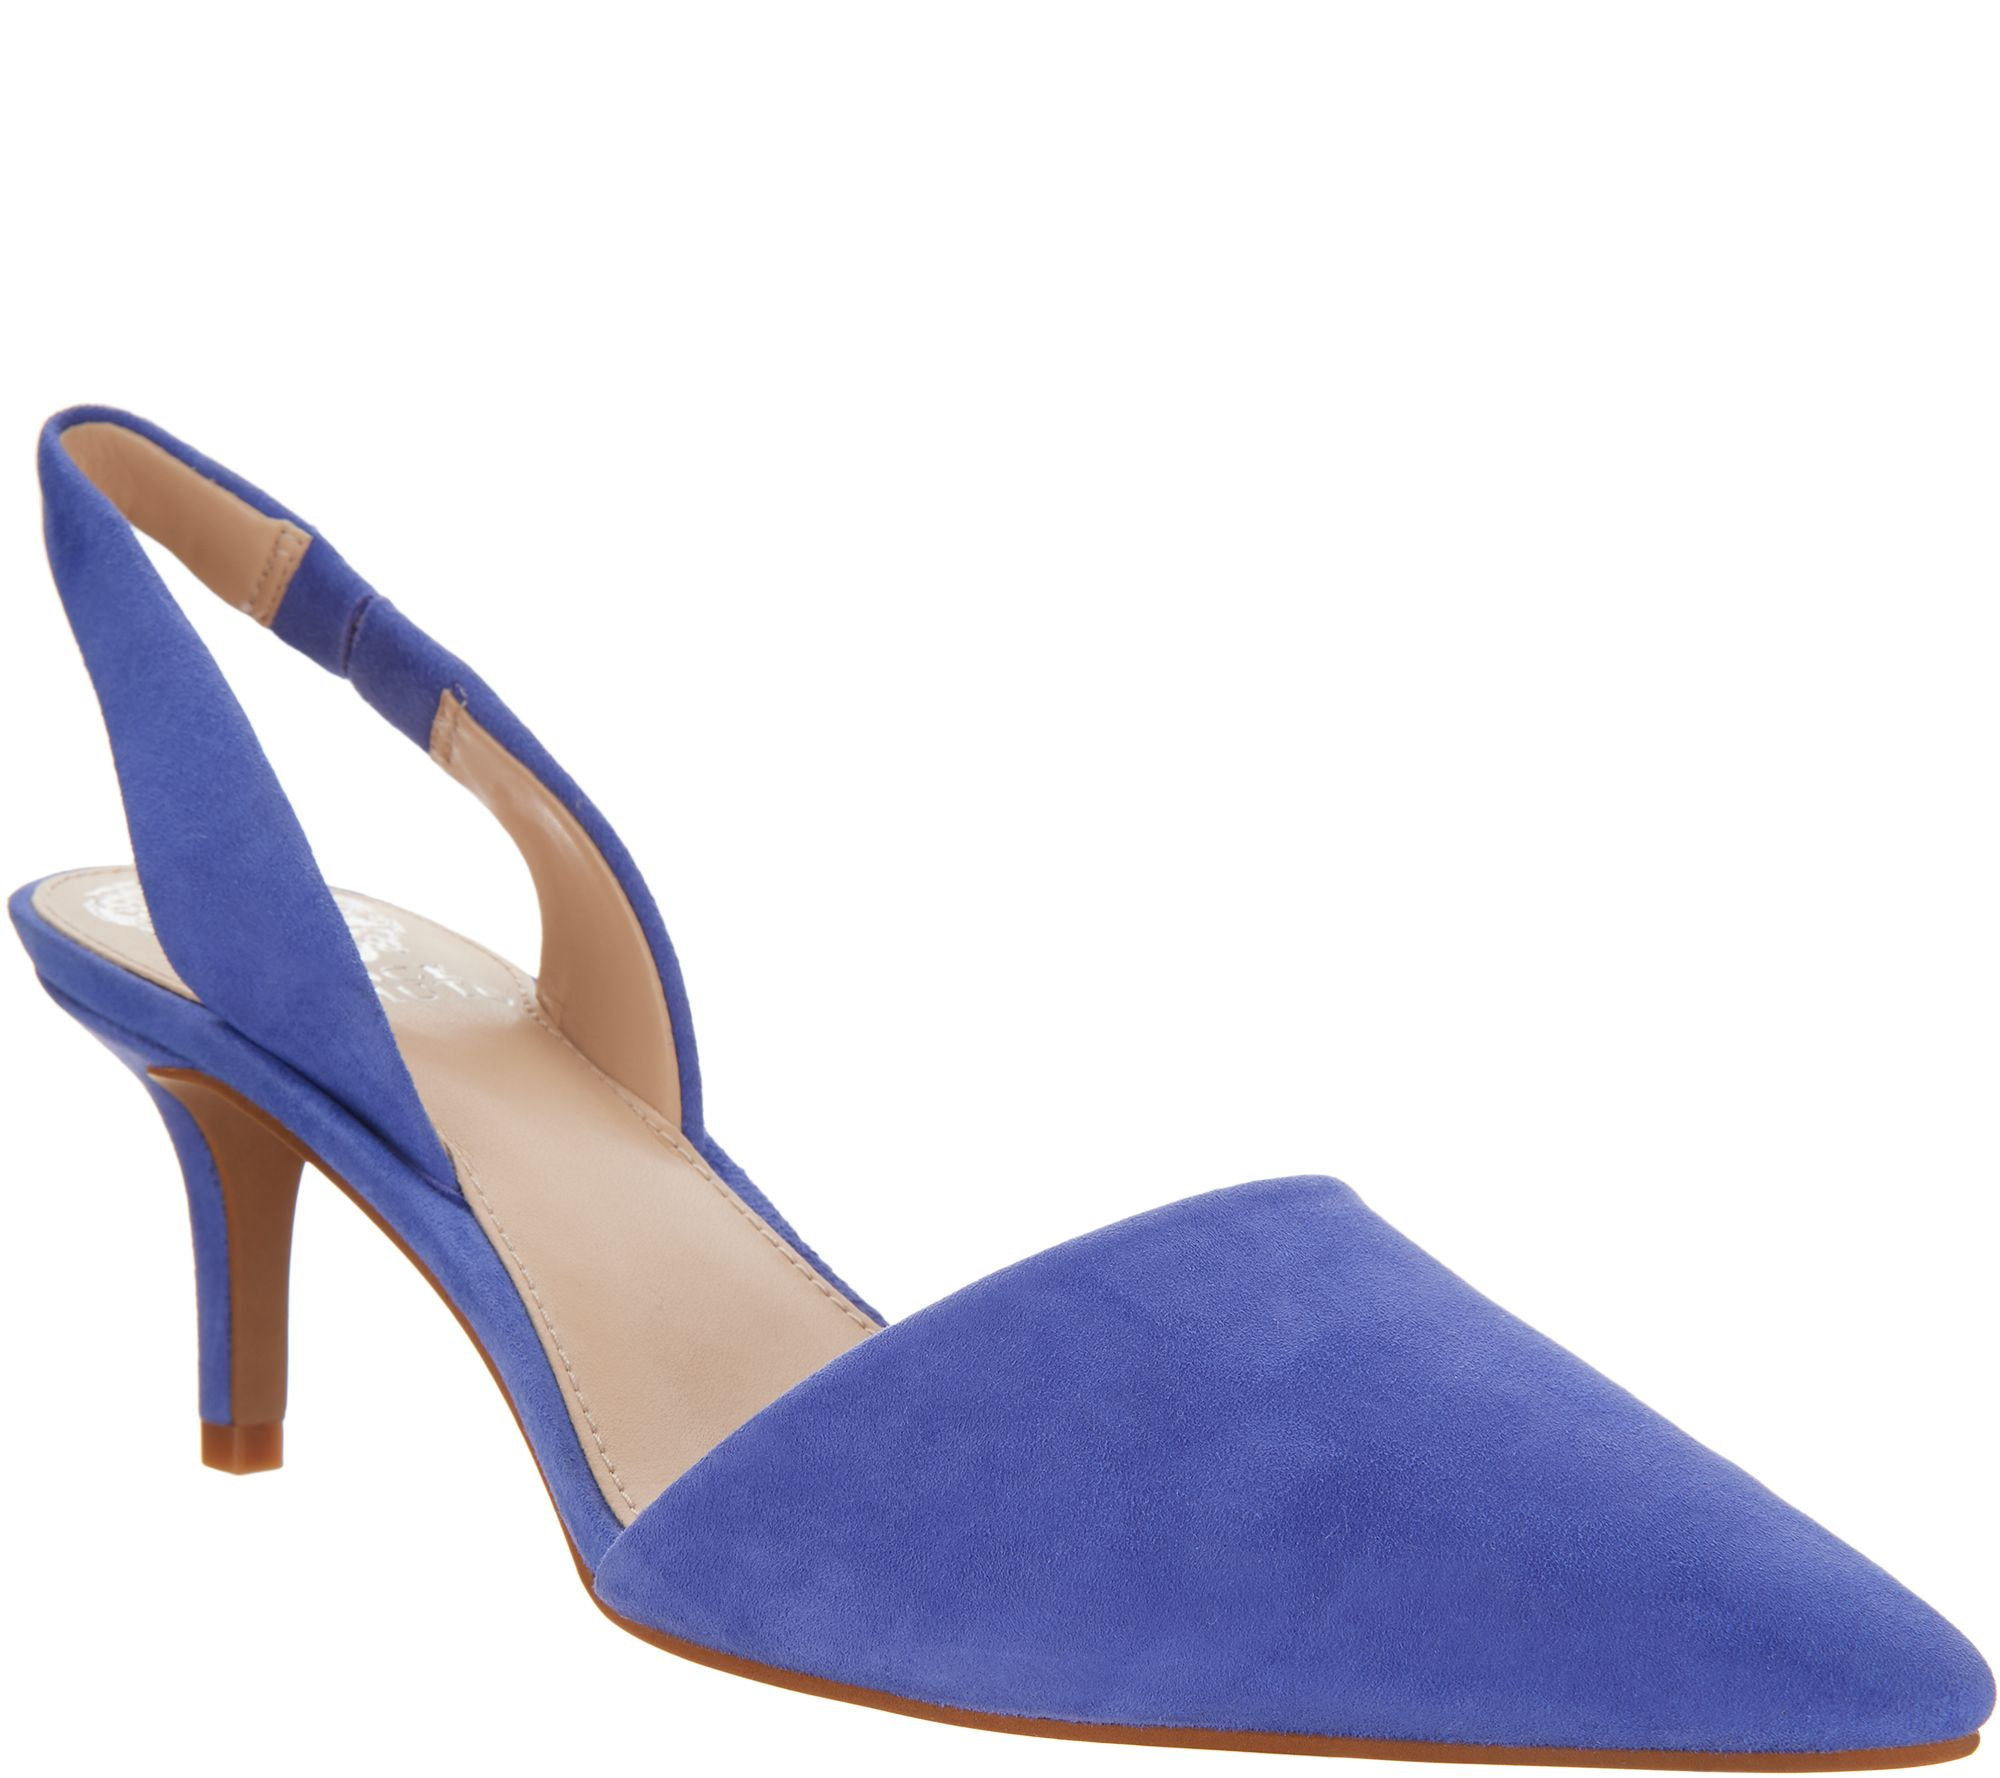 264a3978809 Vince Camuto Leather or Suede Slingback Pumps - Kolissa - Page 1 — QVC.com